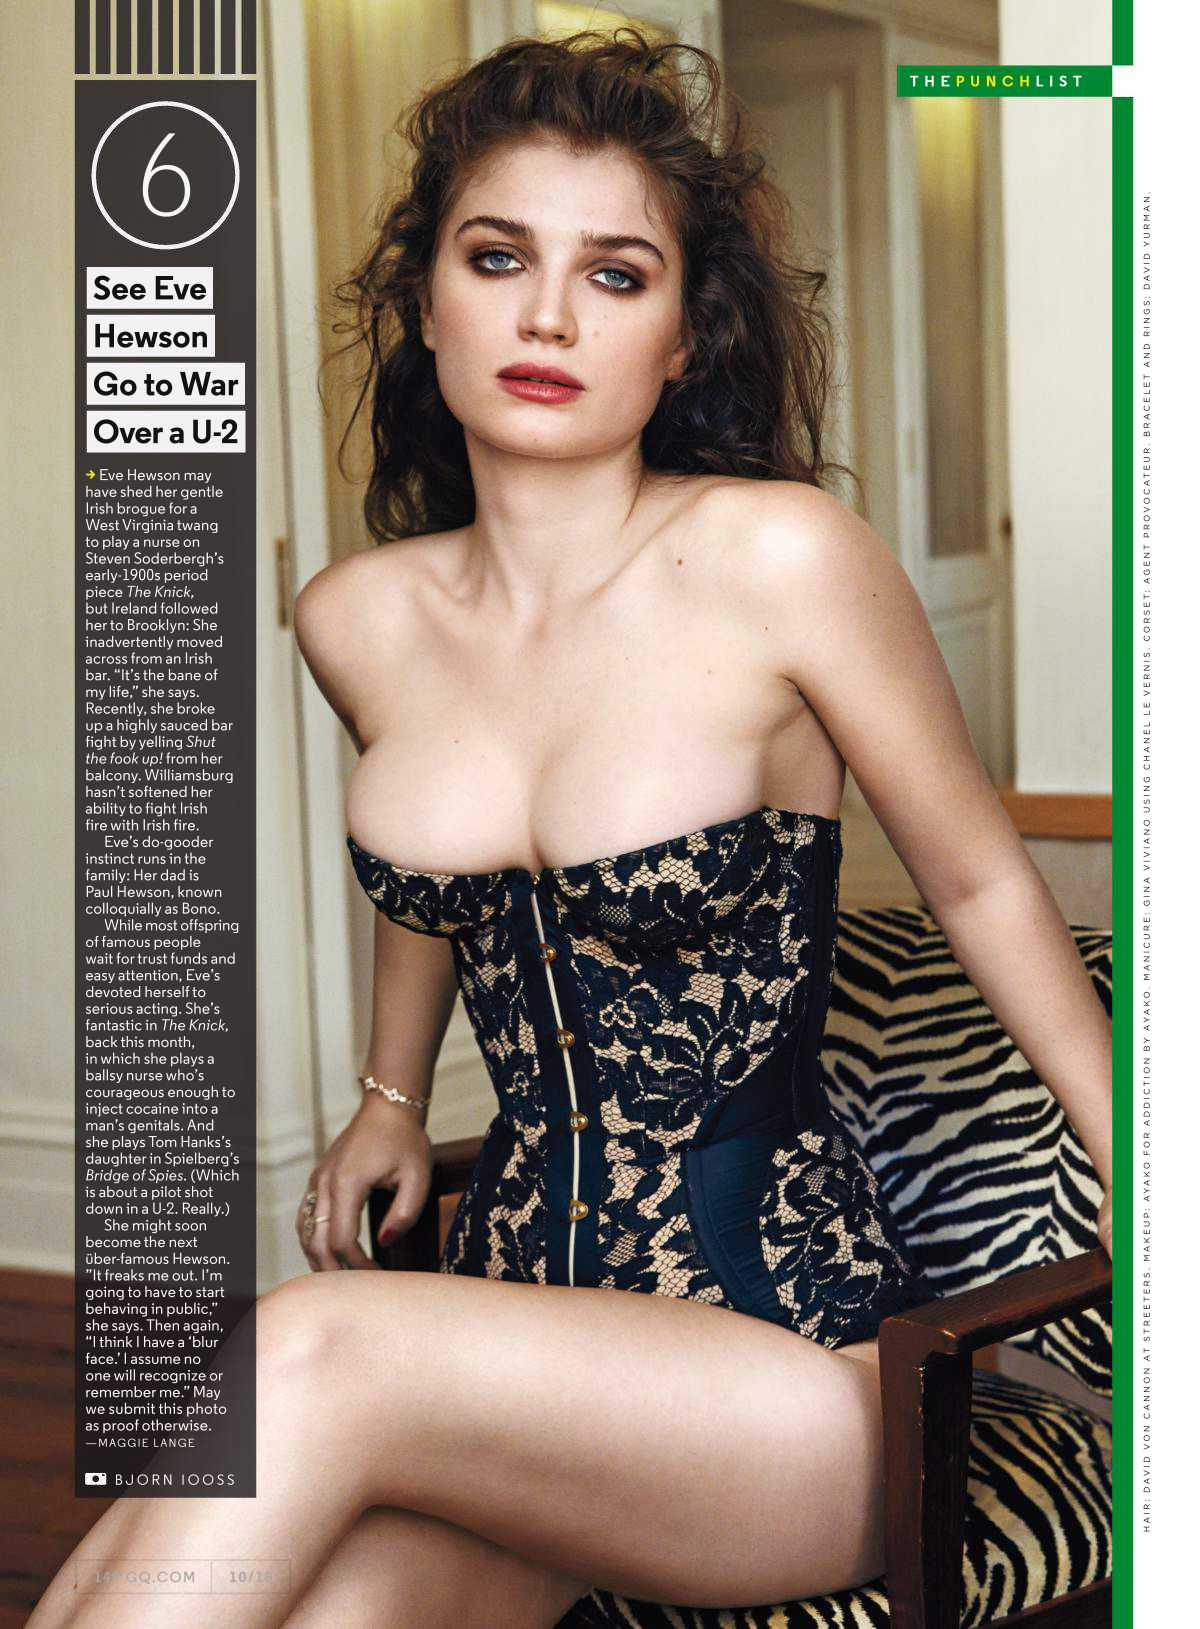 EVE HEWSON in GQ Magazine, October 2015 Issue